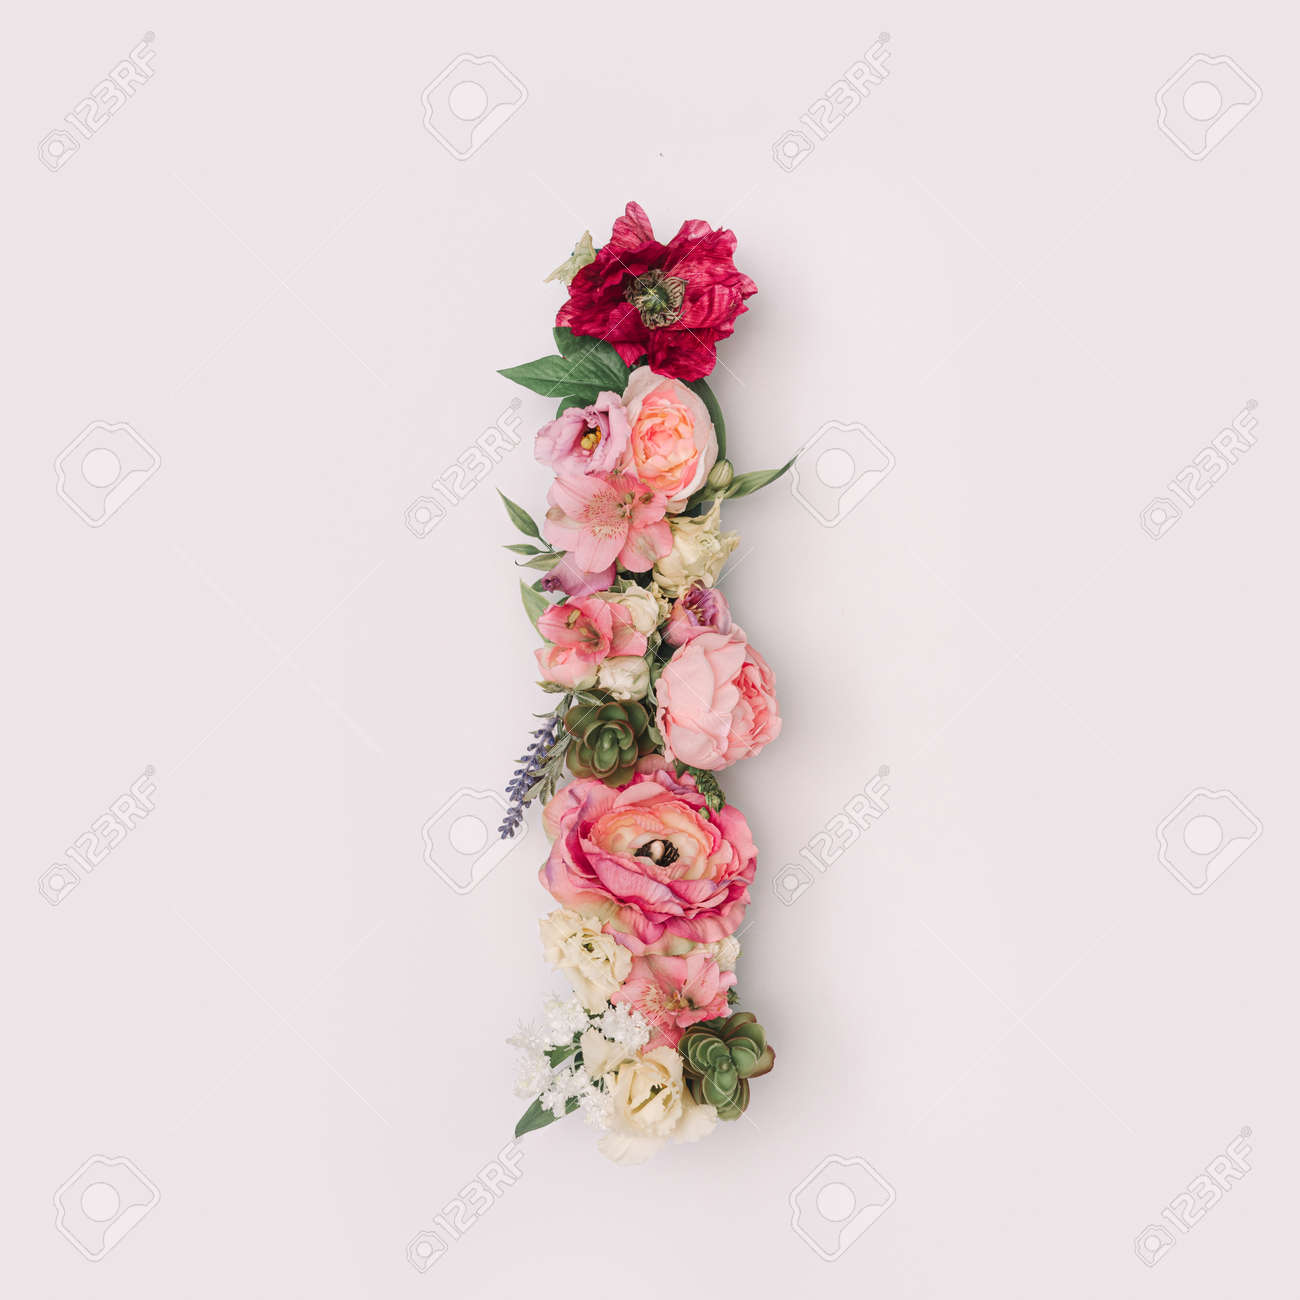 Letter I made of real natural flowers and leaves. Flower font concept. Unique collection of letters and numbers. Spring, summer and valentines creative idea. - 163345921